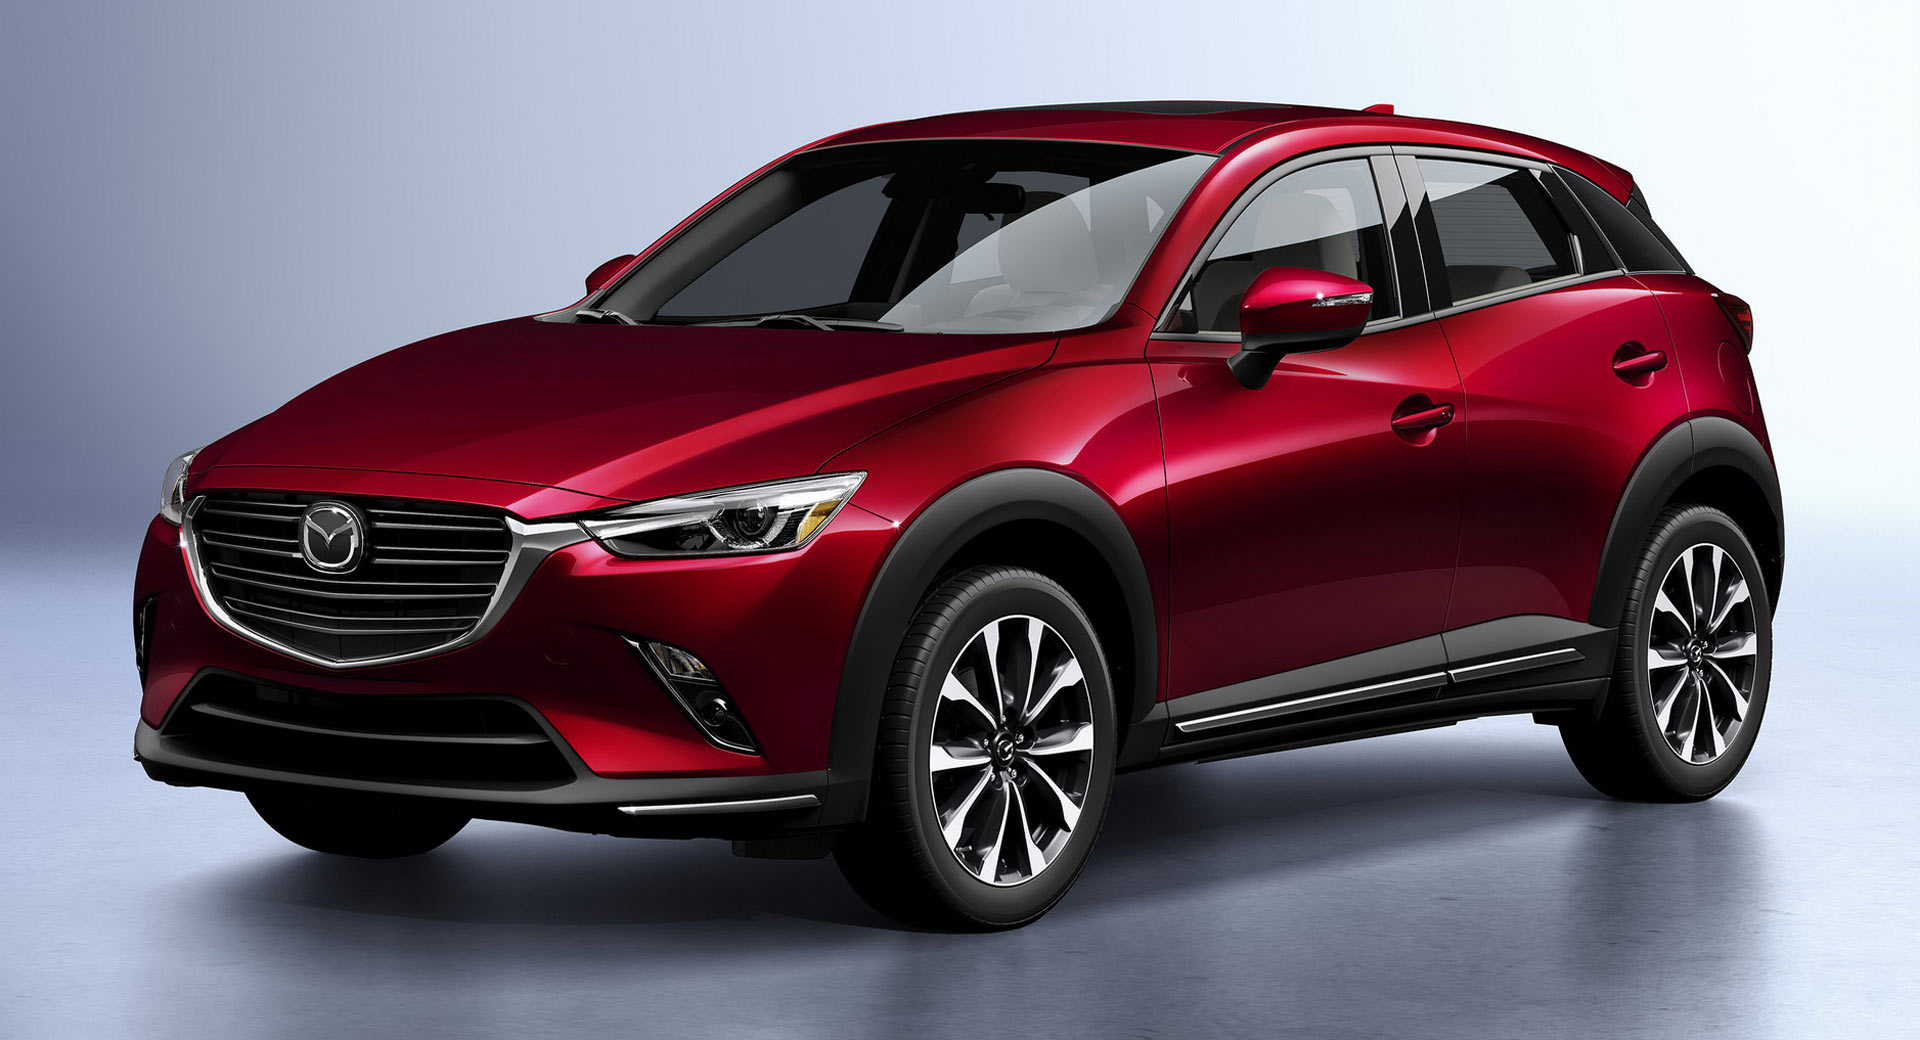 2020 Mazda Cx 3 Redesign and Concept